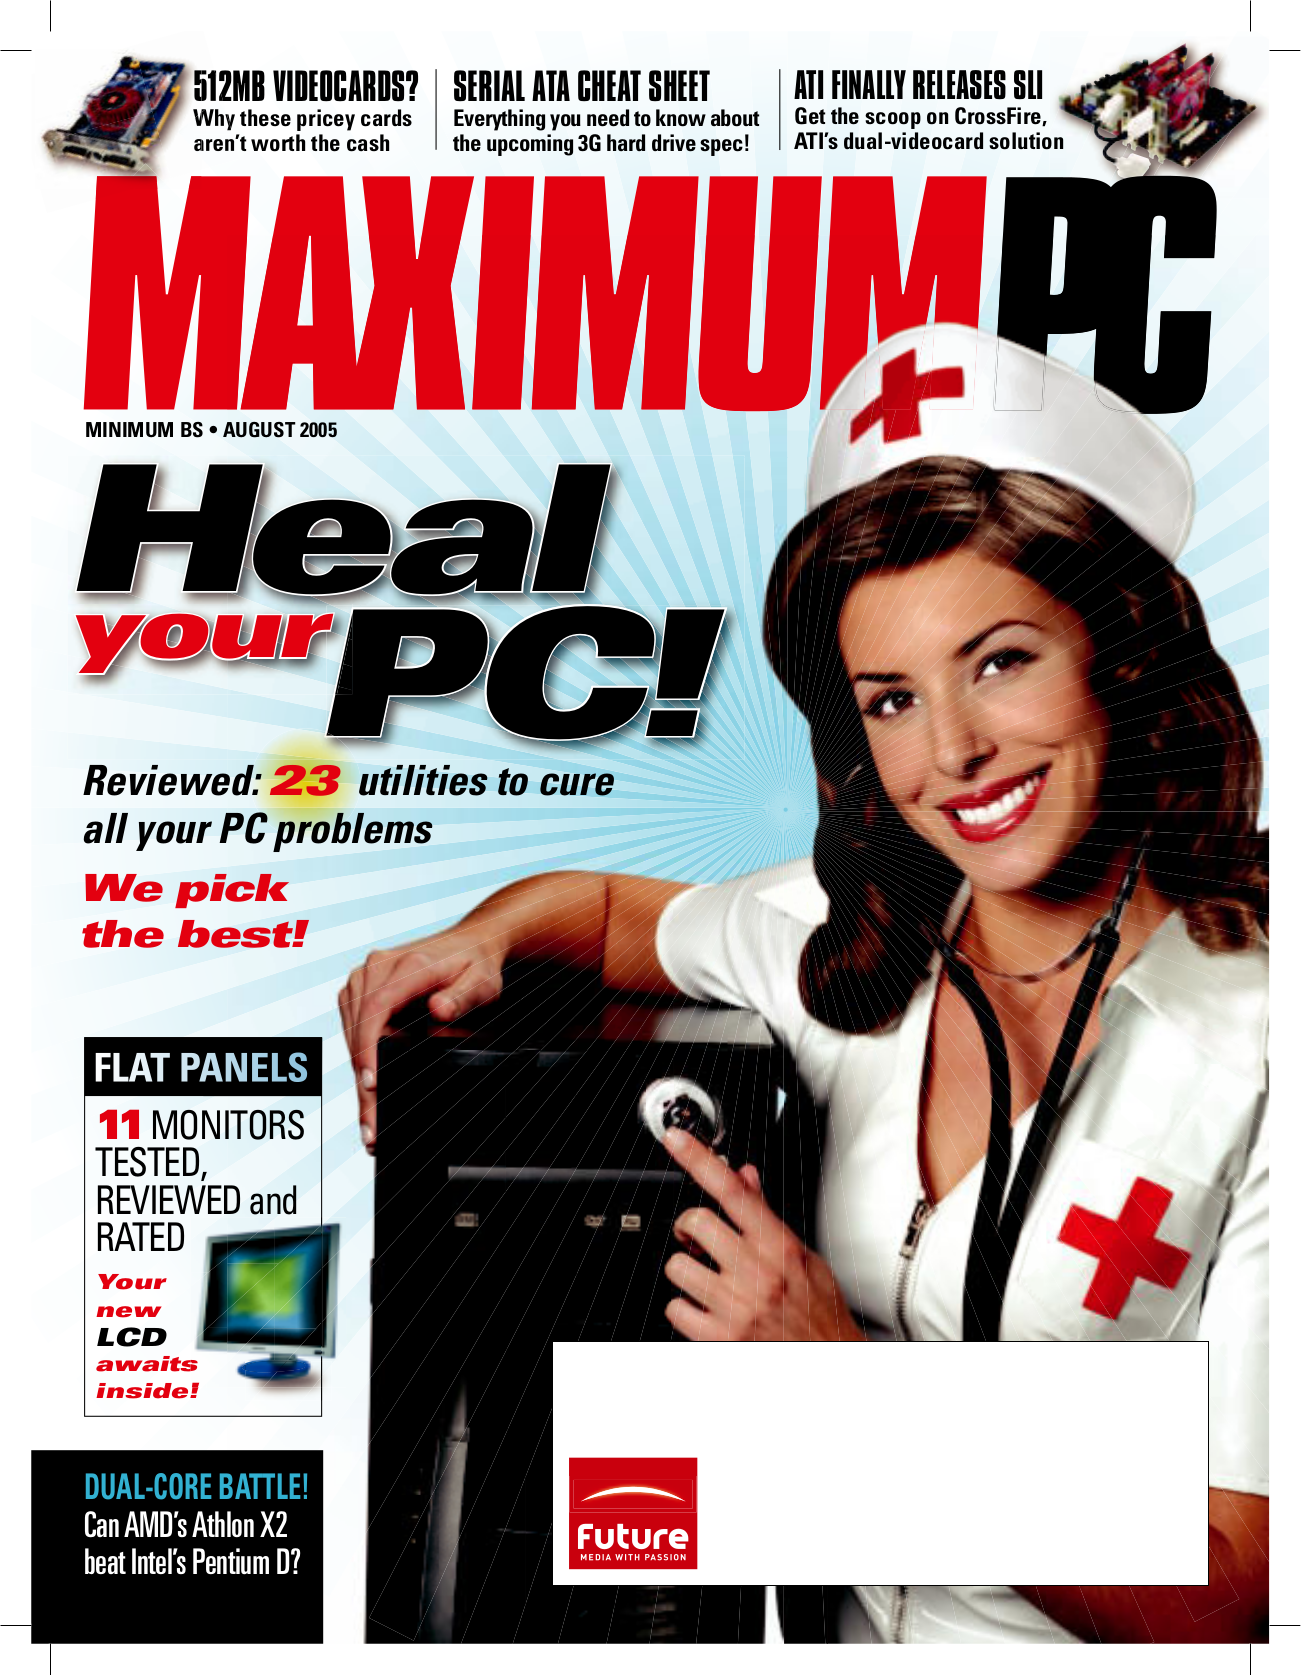 pdf for Norcent Monitor LM960 manual